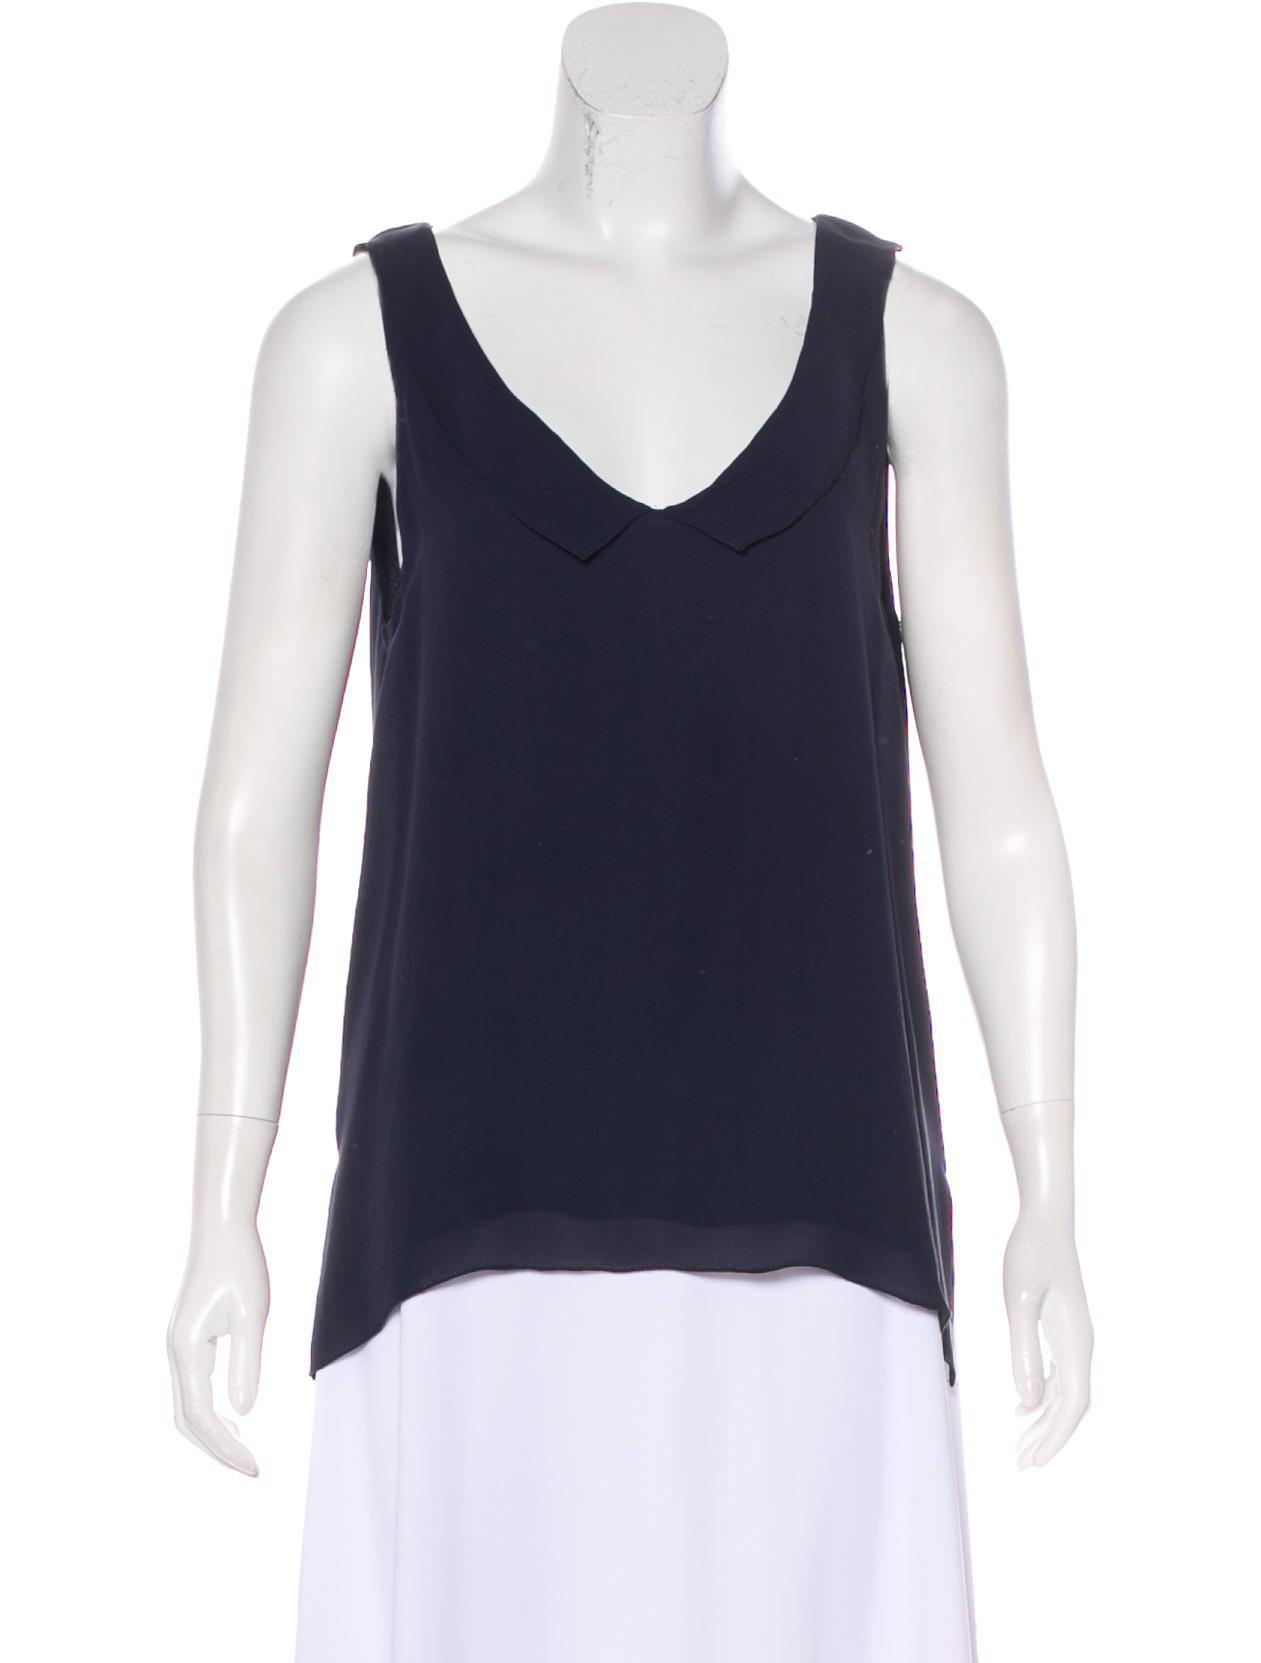 L'Agence Silk Sleeveless Top Clearance Browse View Online Cheap Low Price Cheap Sale Shop dqoG6X